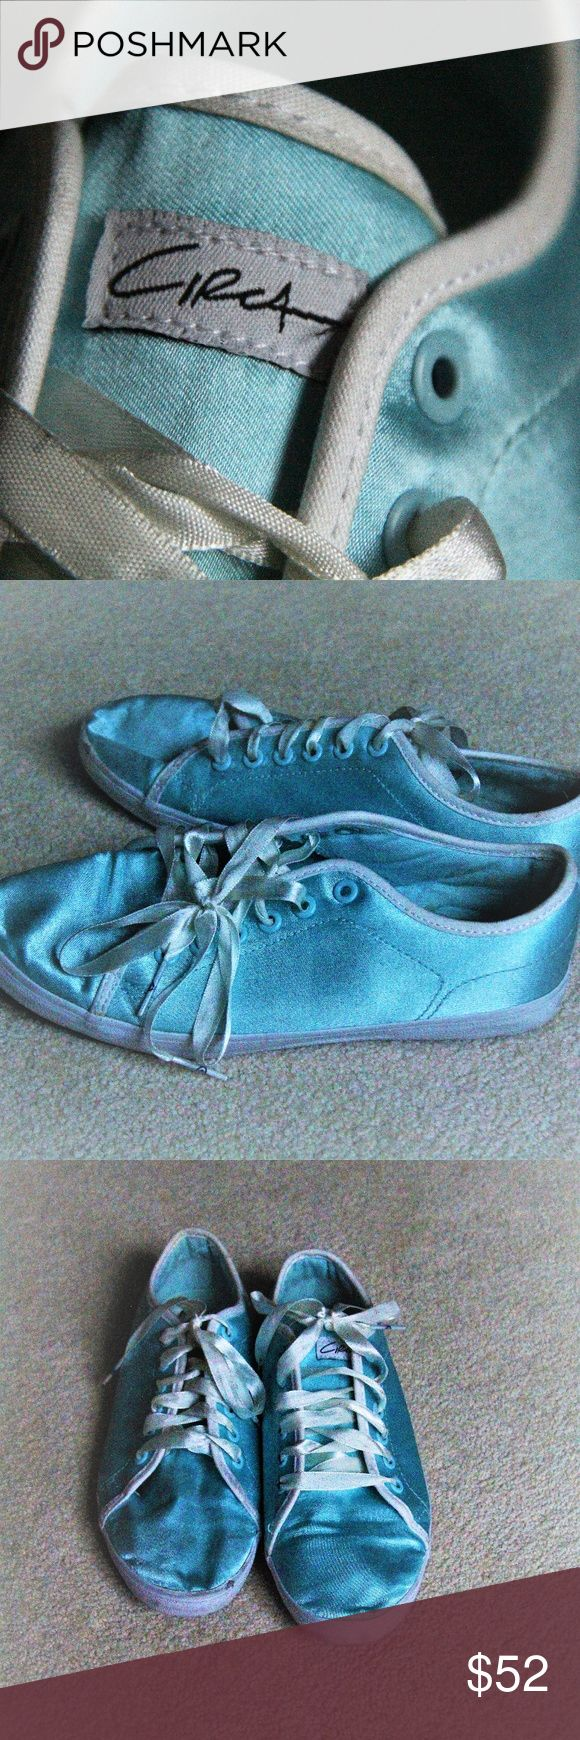 Circa Blue Silk Shoes These rare blue silk shoes are a gorgeous and stylish fashion piece! Feature cream silk laces. Beautiful for summer weather! In good condition. Size 8. Circa Shoes Sneakers